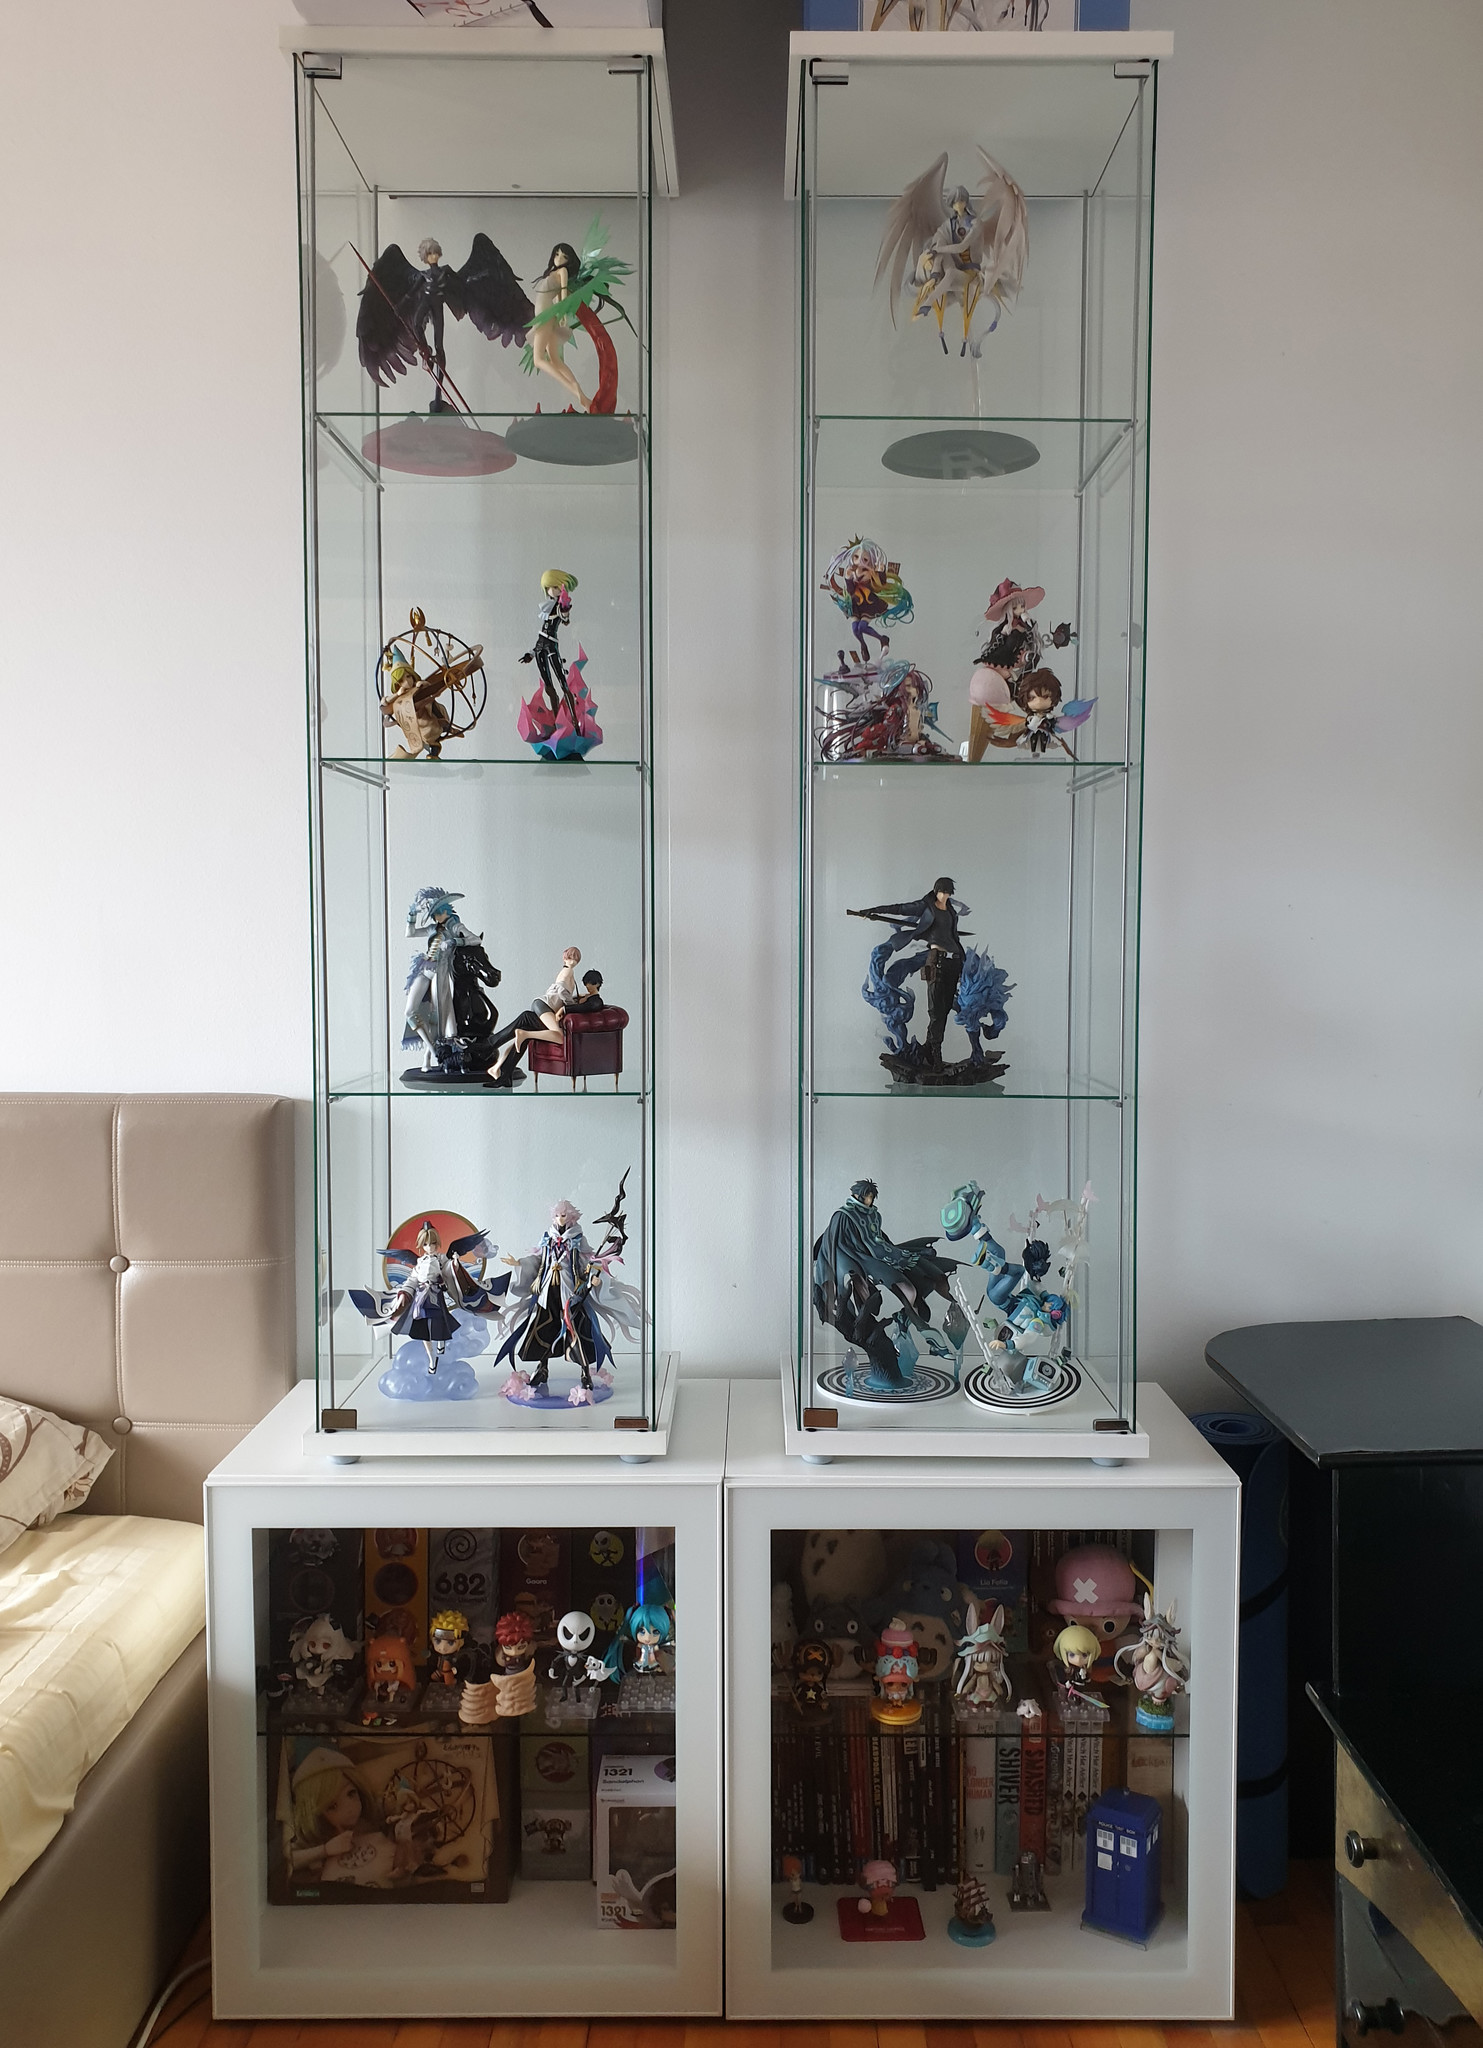 https://static.myfigurecollection.net/upload/pictures/2021/03/28/2673001.jpeg